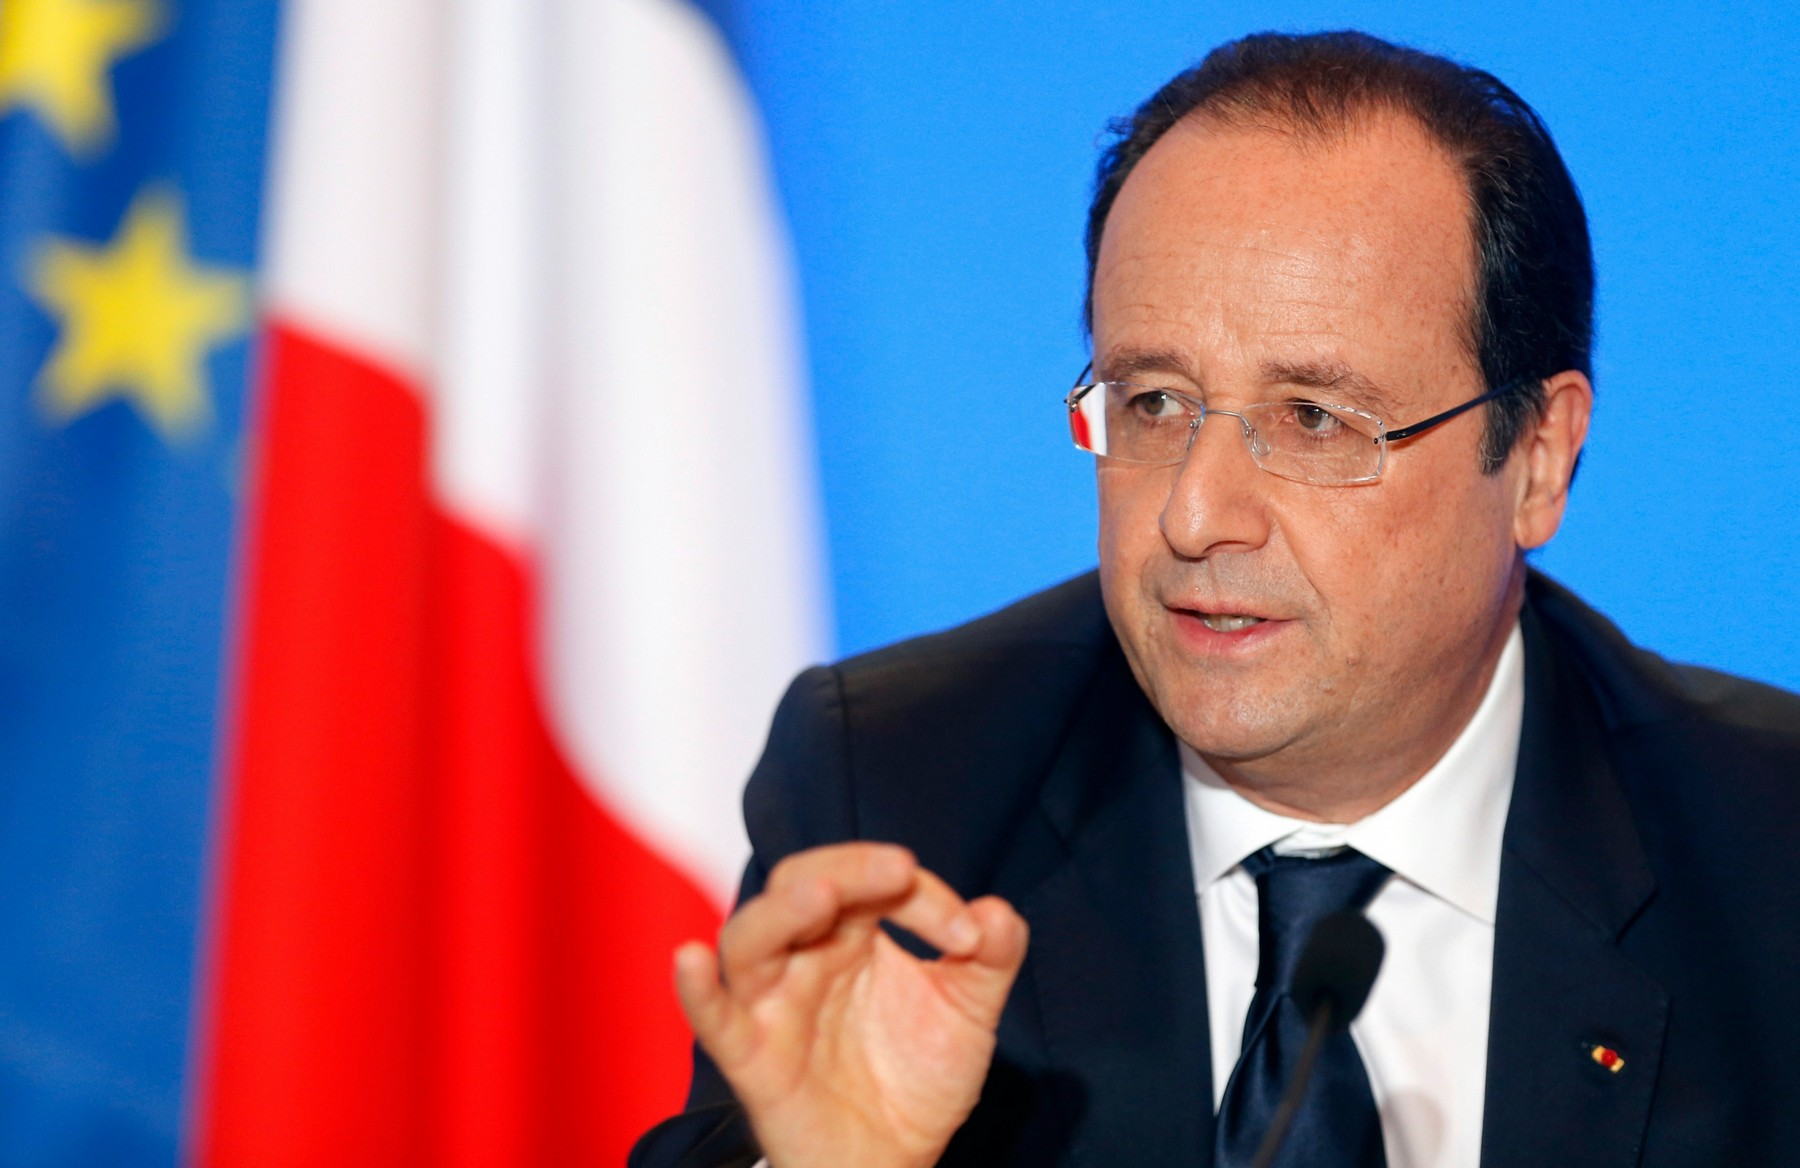 France to send aircraft carrier and additional military advisers to Iraq